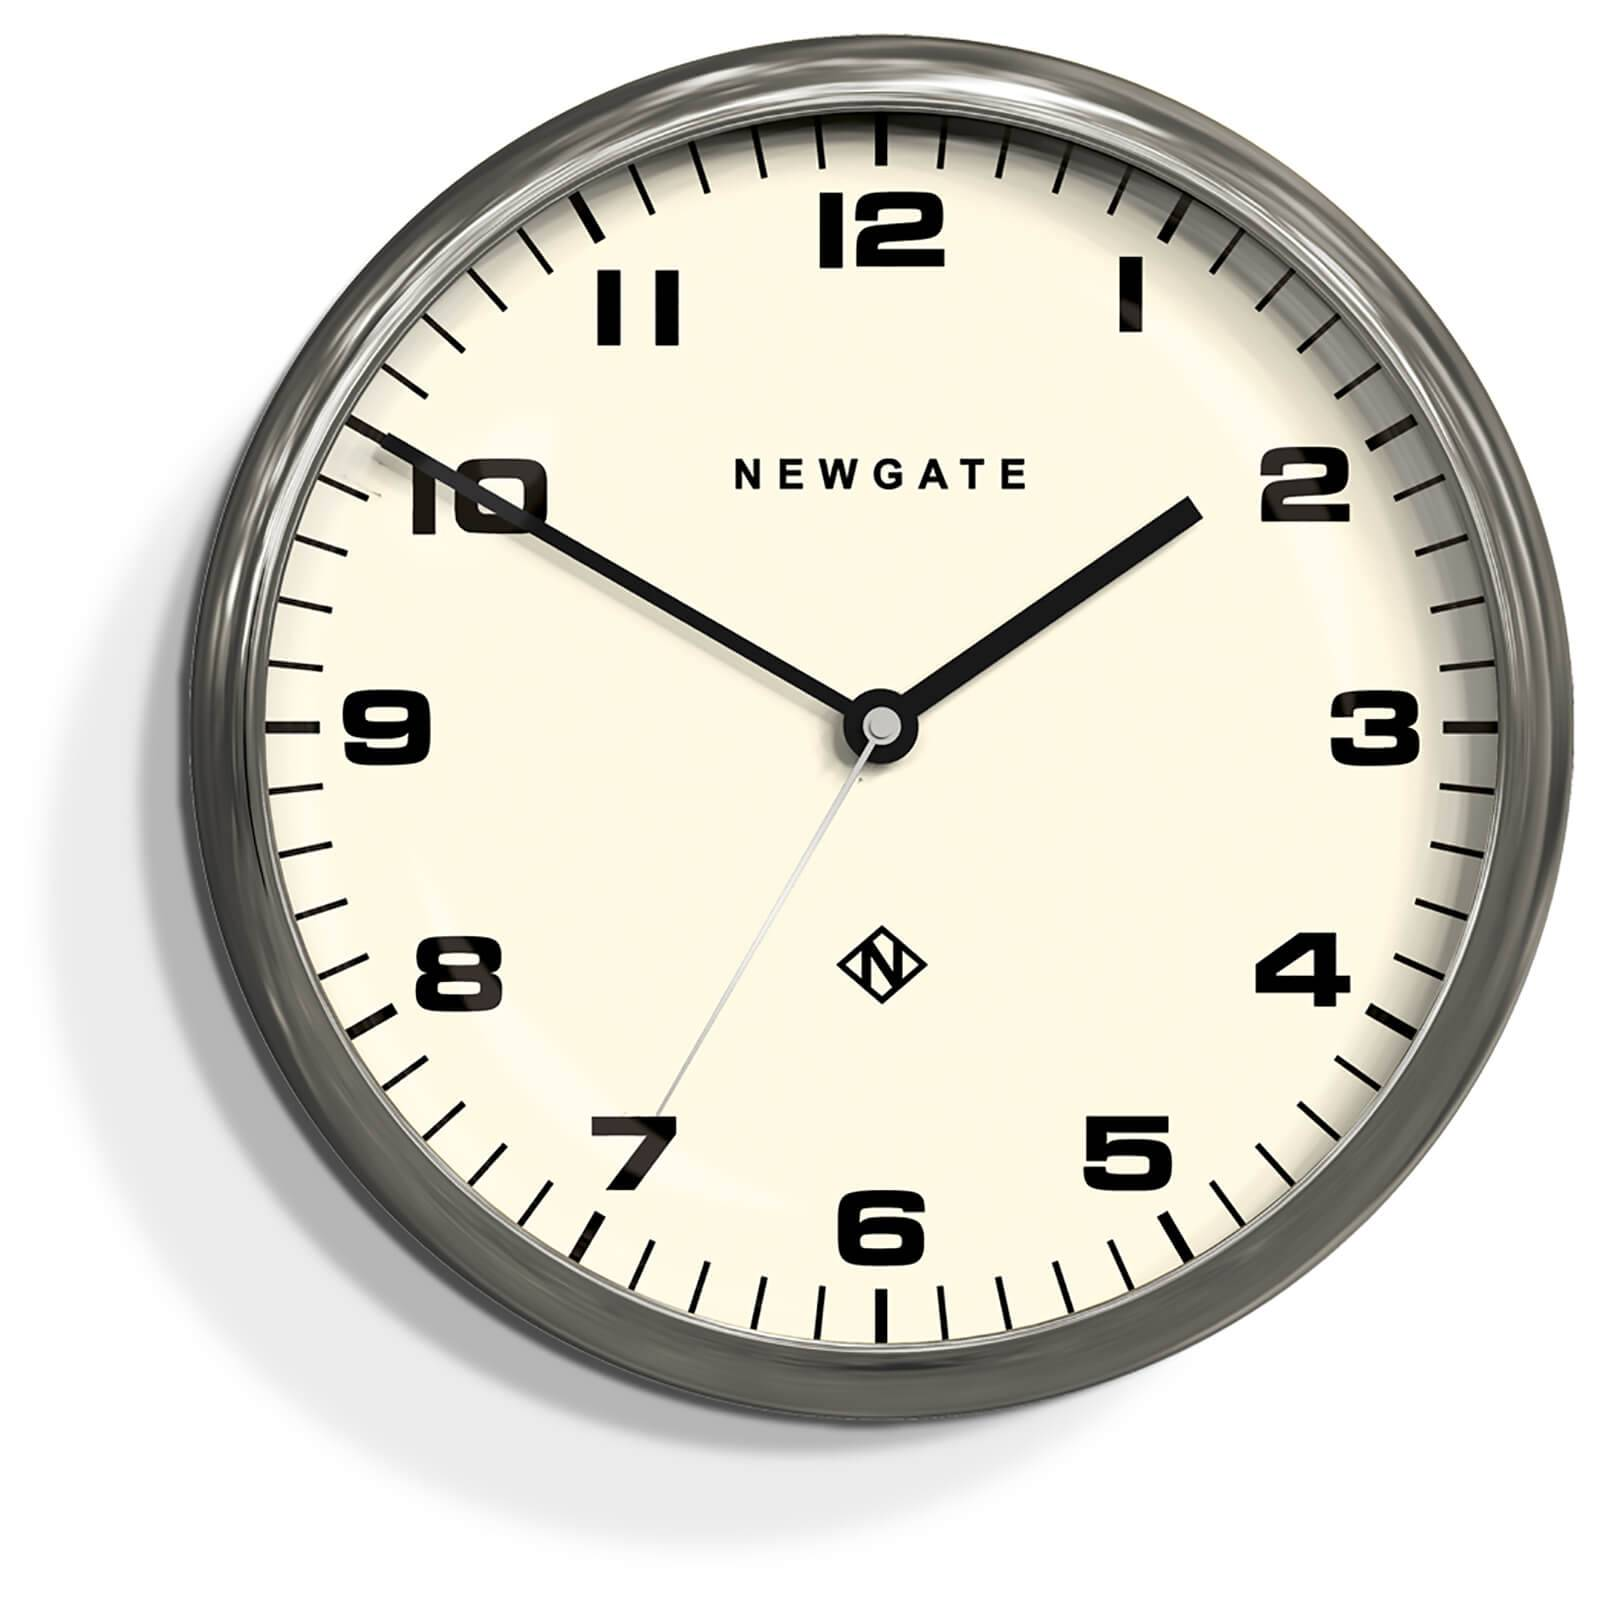 Newgate Chrysler Silent Wall Clock - Burnished Stainless Steel